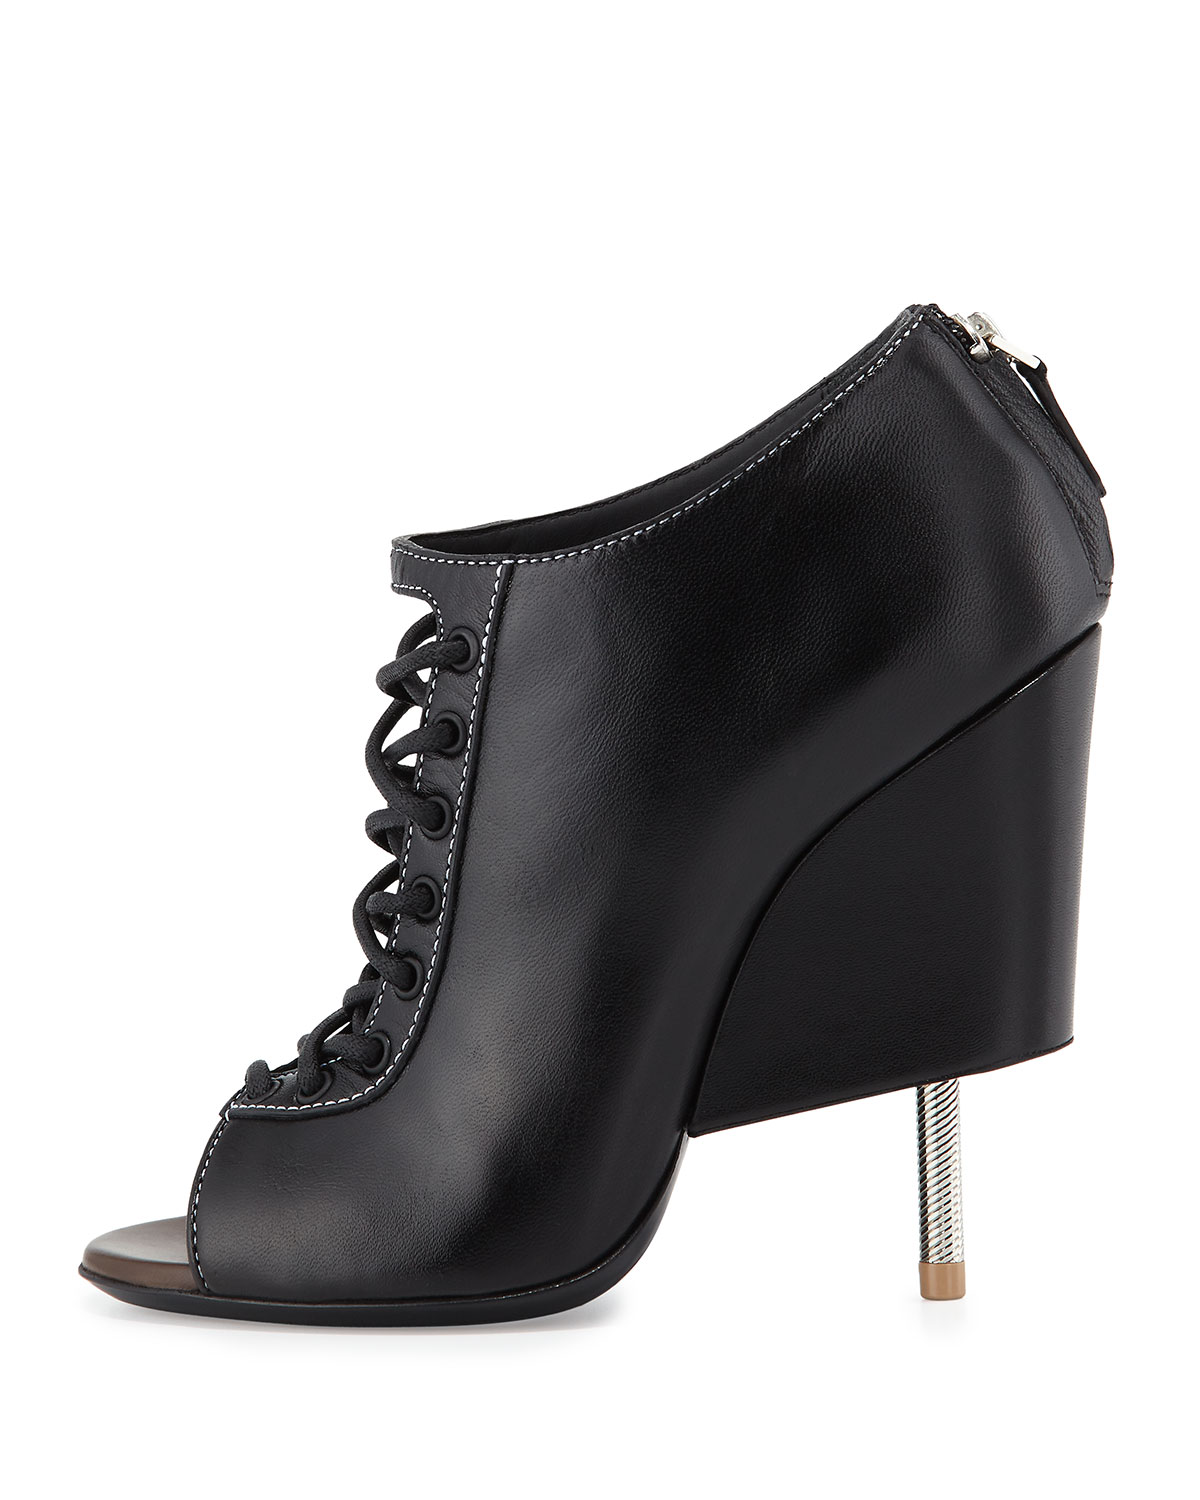 Givenchy Nissa Lace-Up Booties discount for sale discount Manchester hot sale authentic big discount cheap online c3BmG